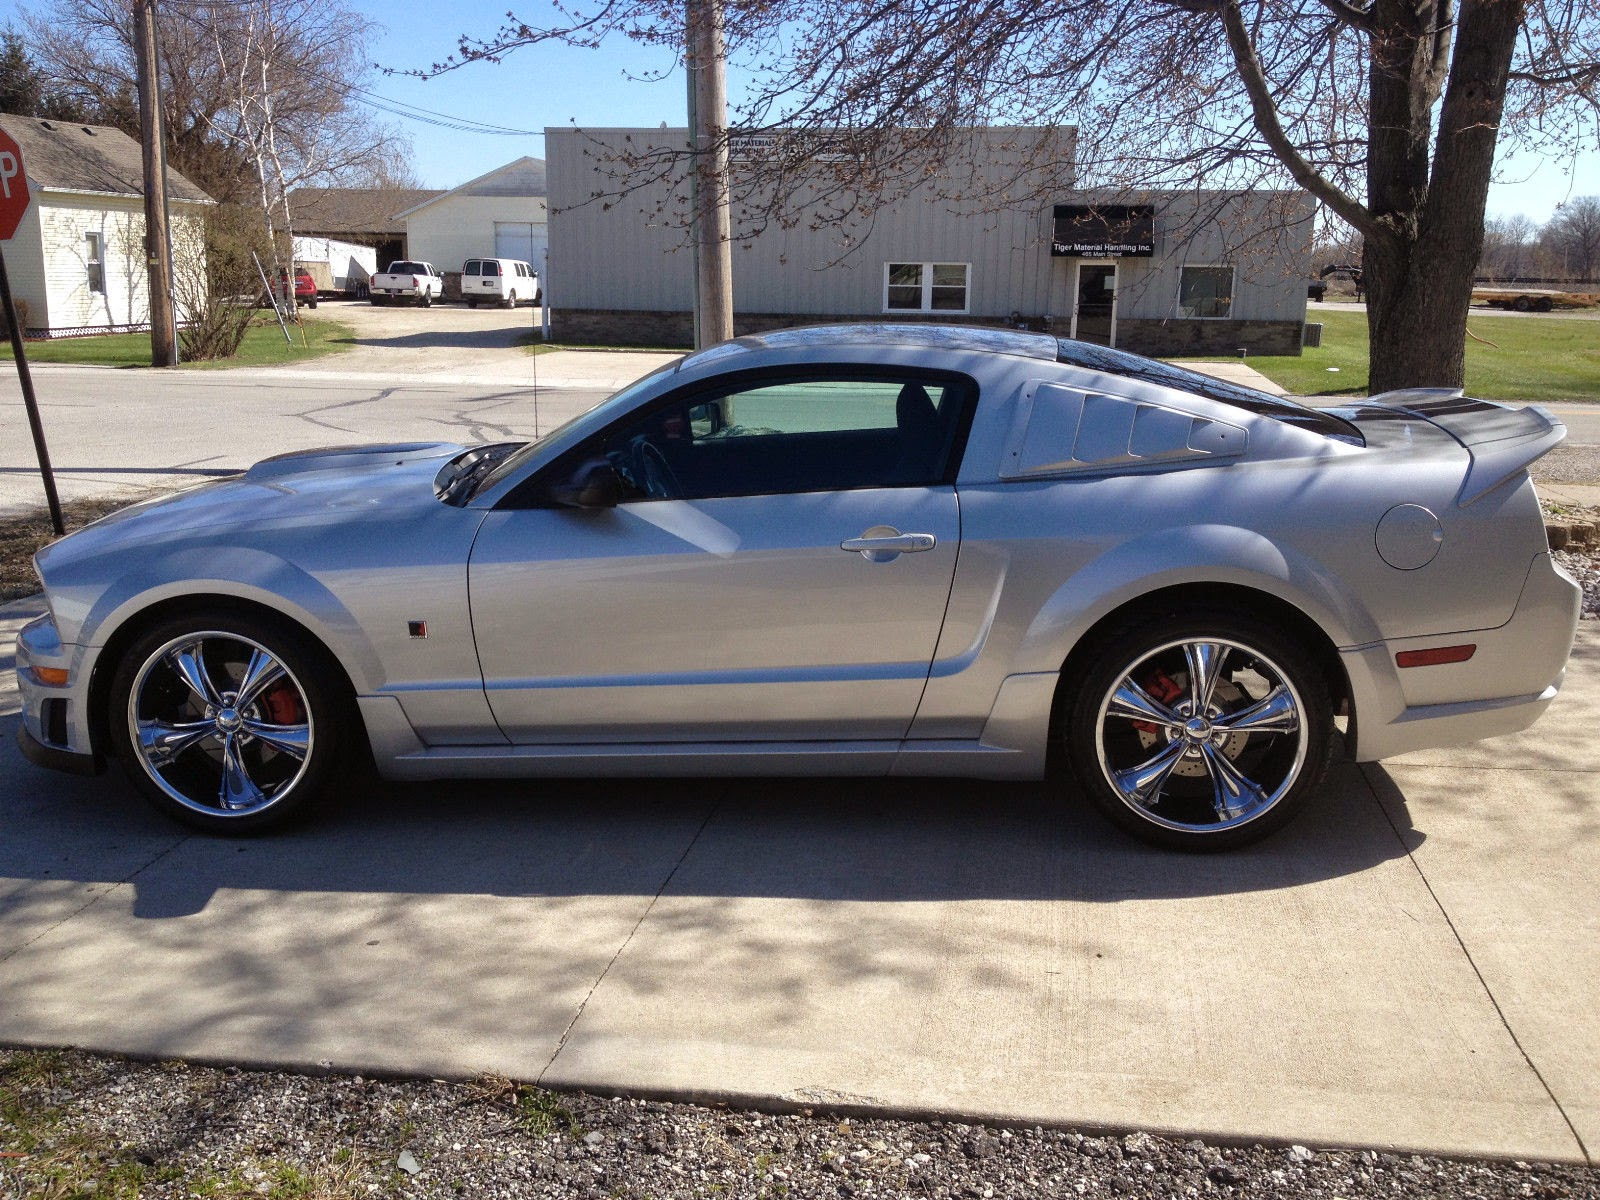 2006 ford mustang gt coupe roush stage 1 for sale. Black Bedroom Furniture Sets. Home Design Ideas